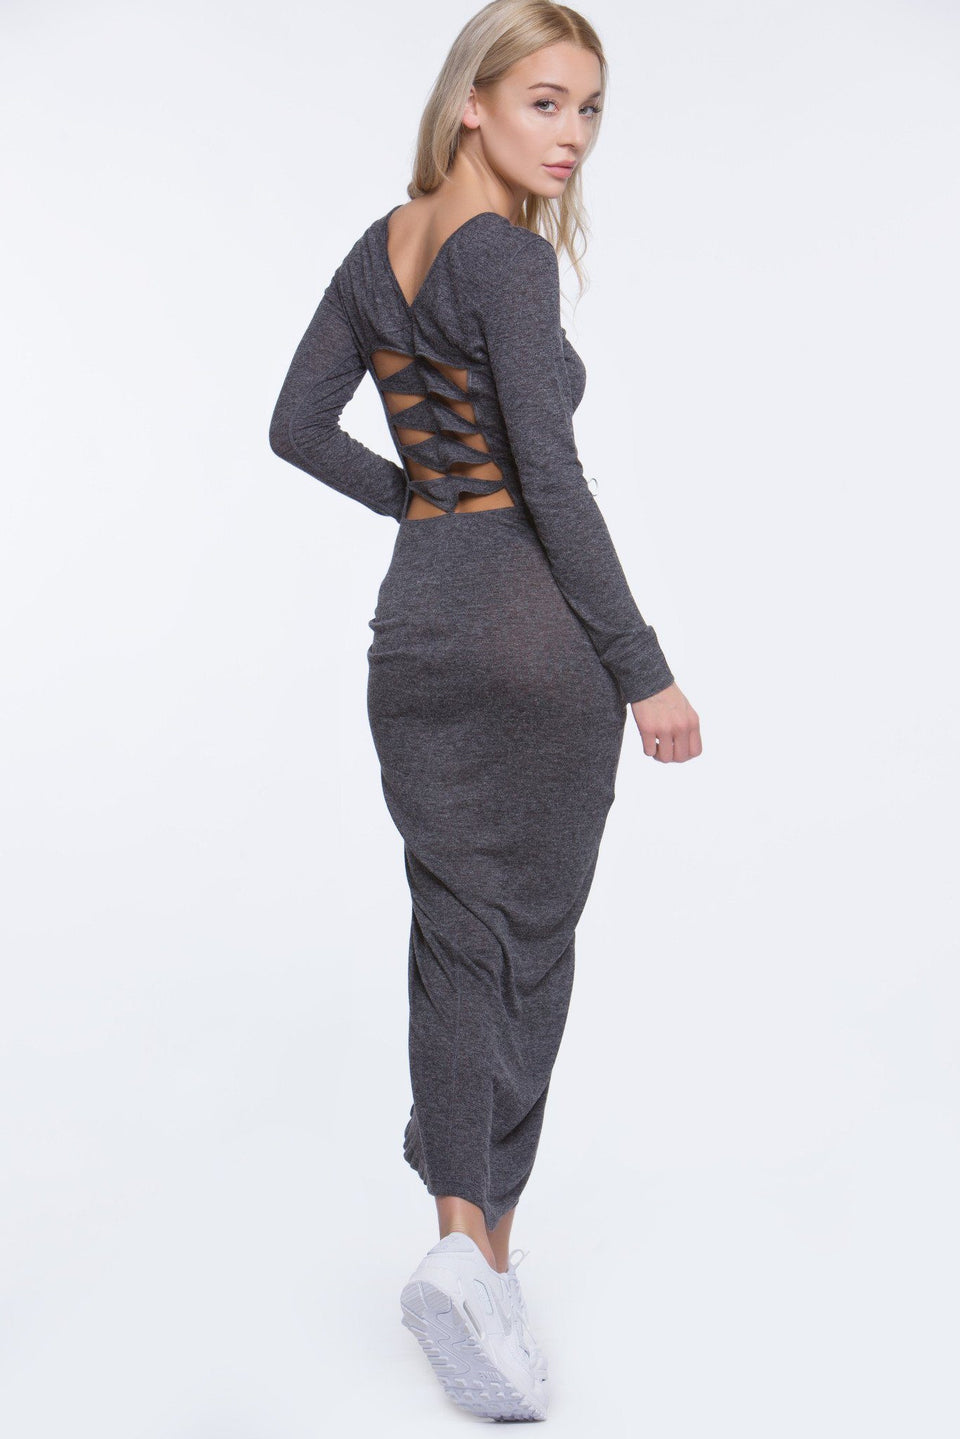 Jaffa Cut-Out Dress